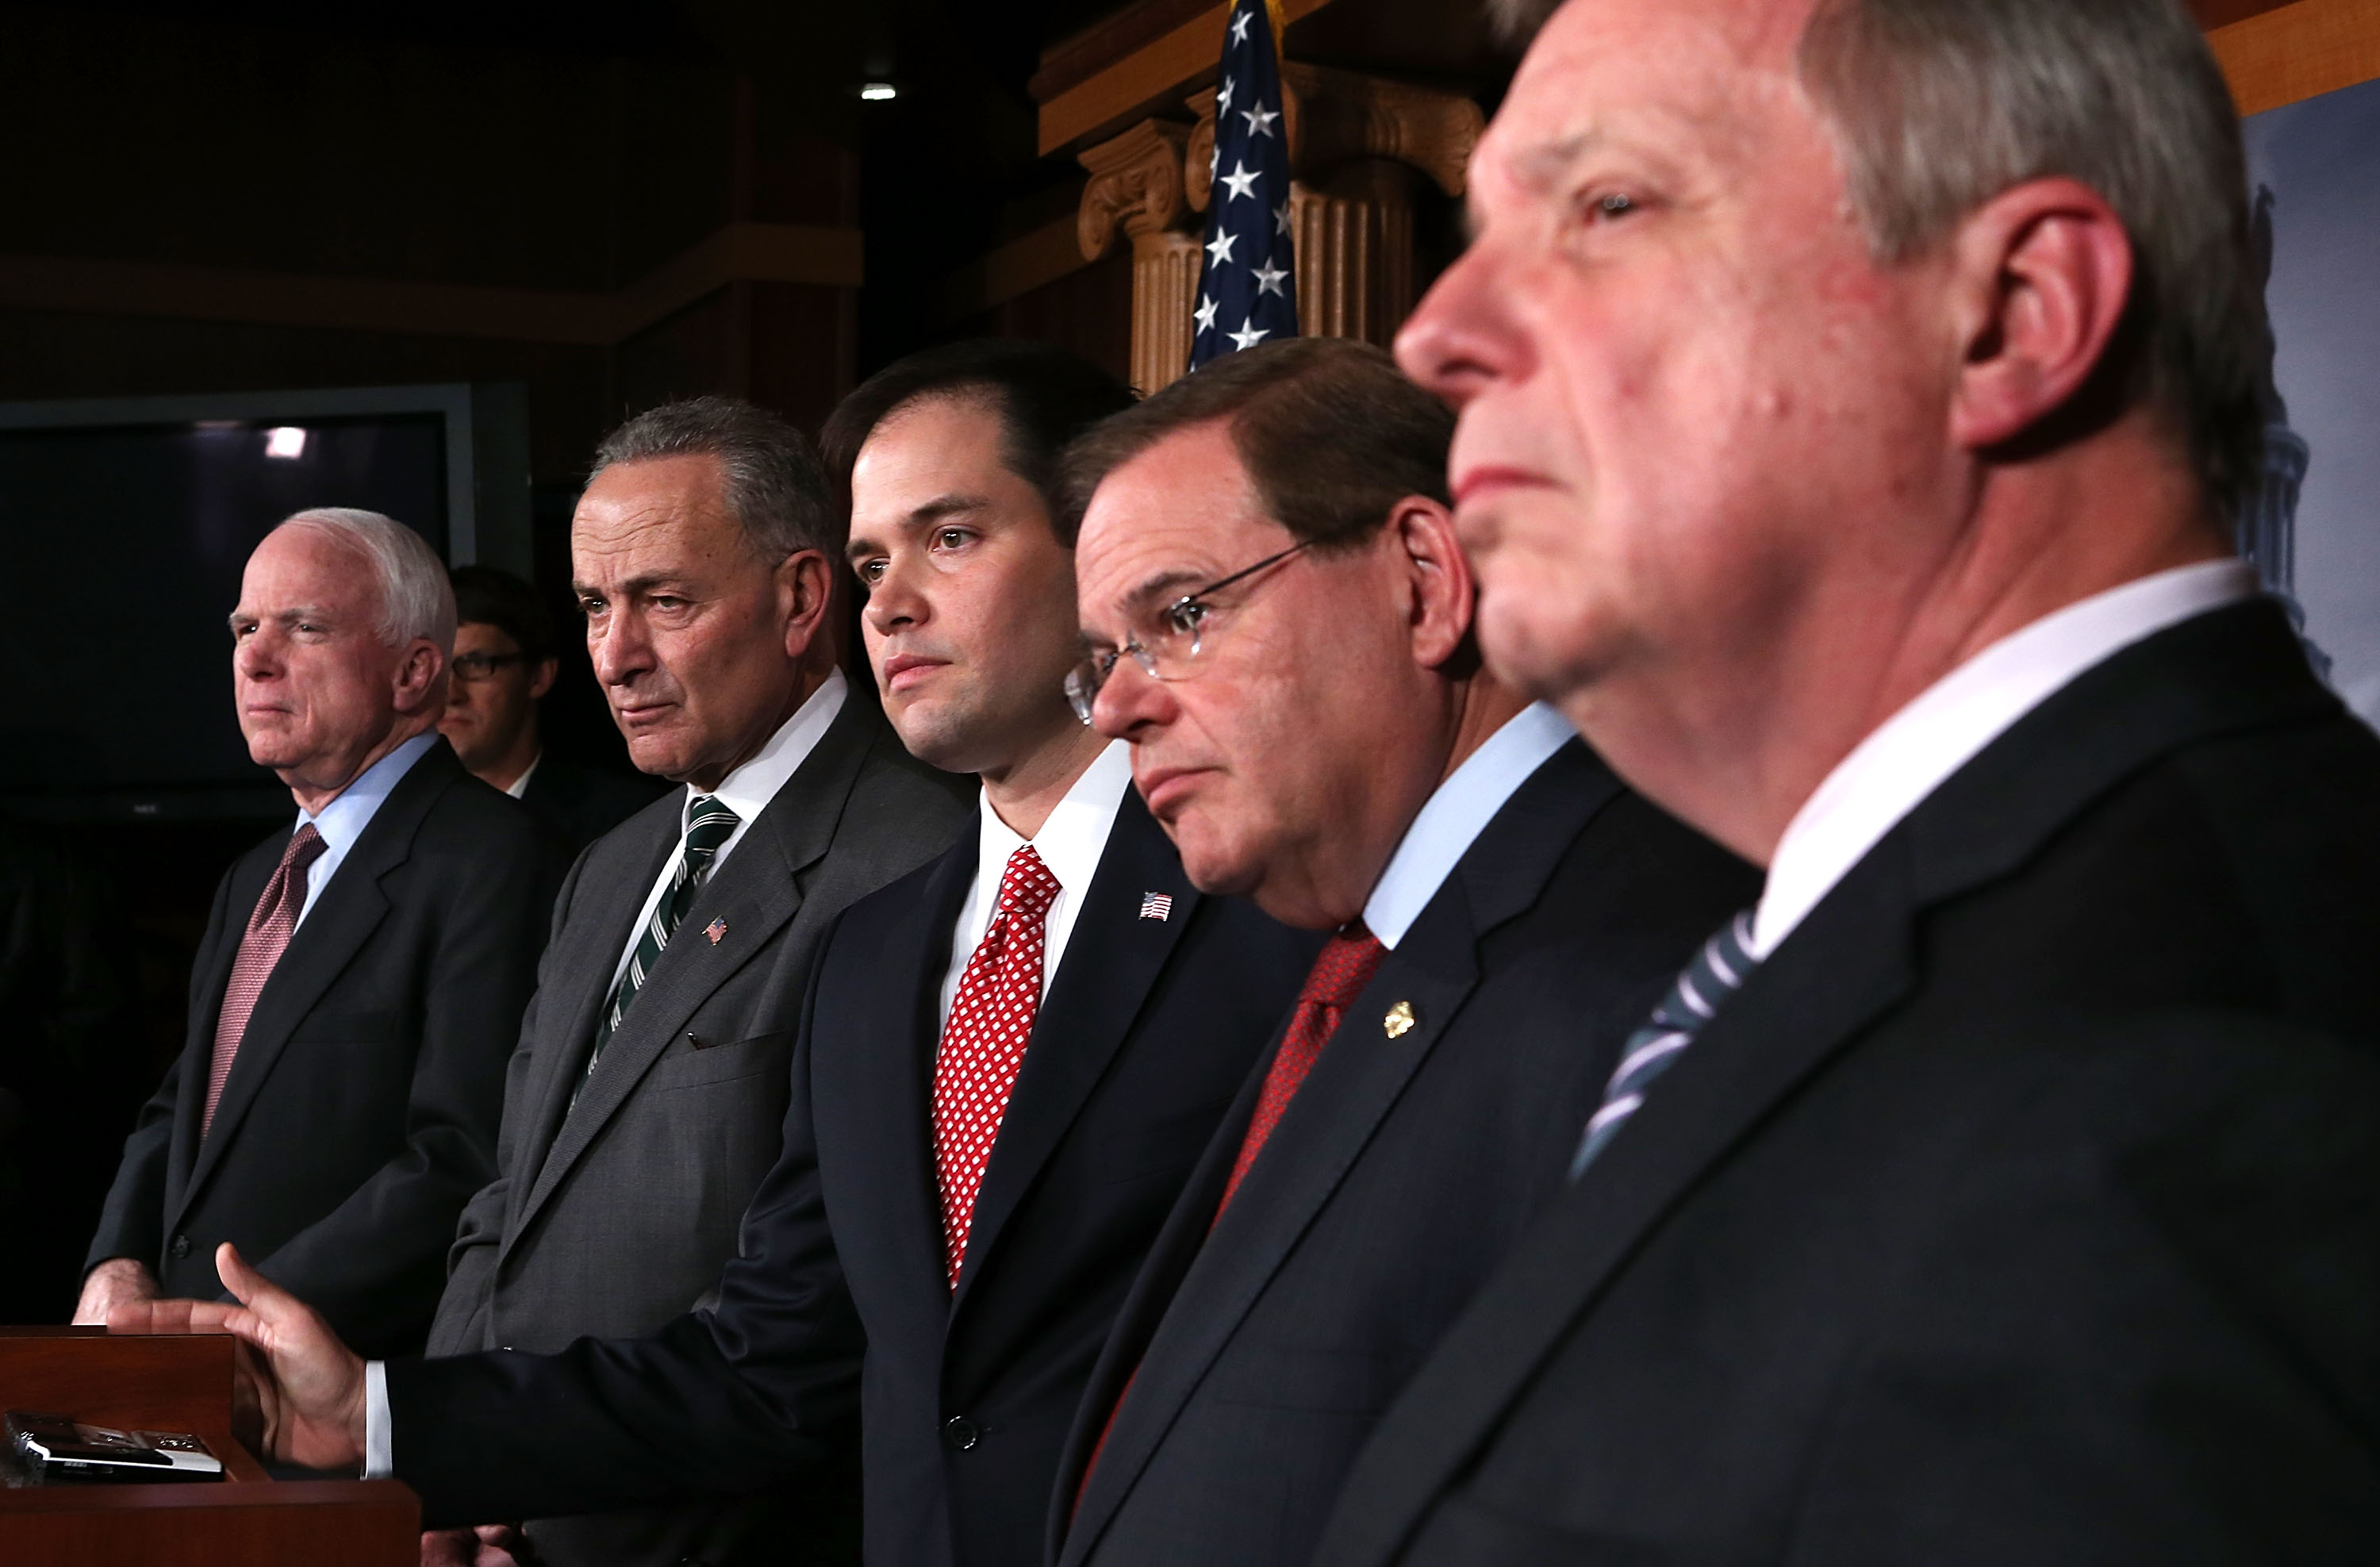 Bipartisan Group Of Senators Announce Major Agreement On Immigration Reform